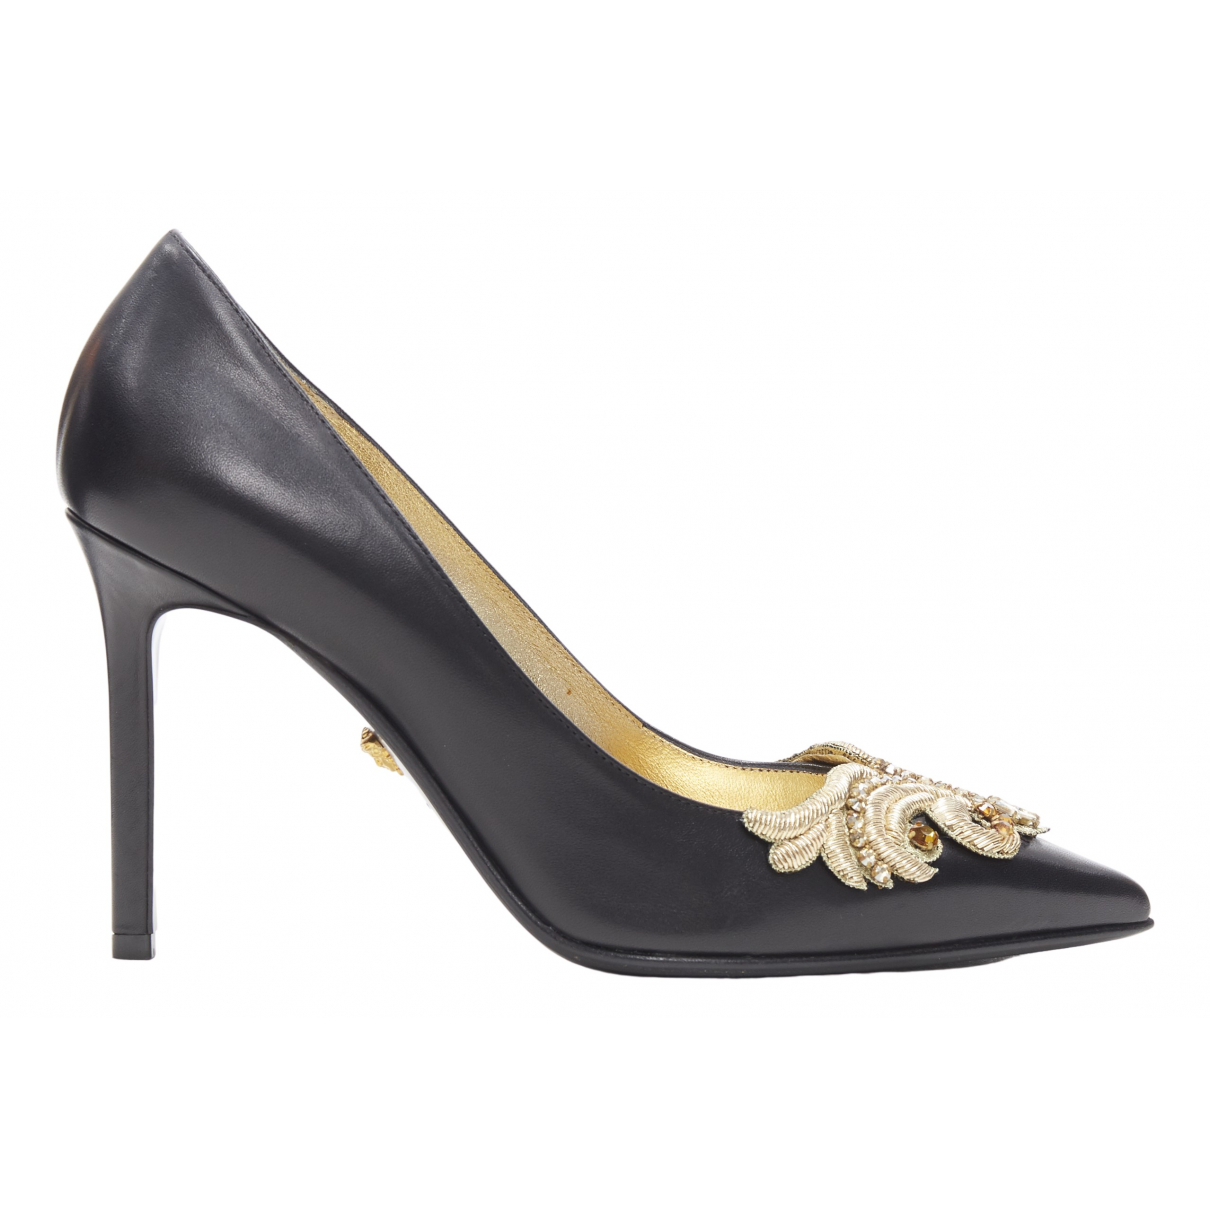 Versace \N Black Leather Heels for Women 37 EU